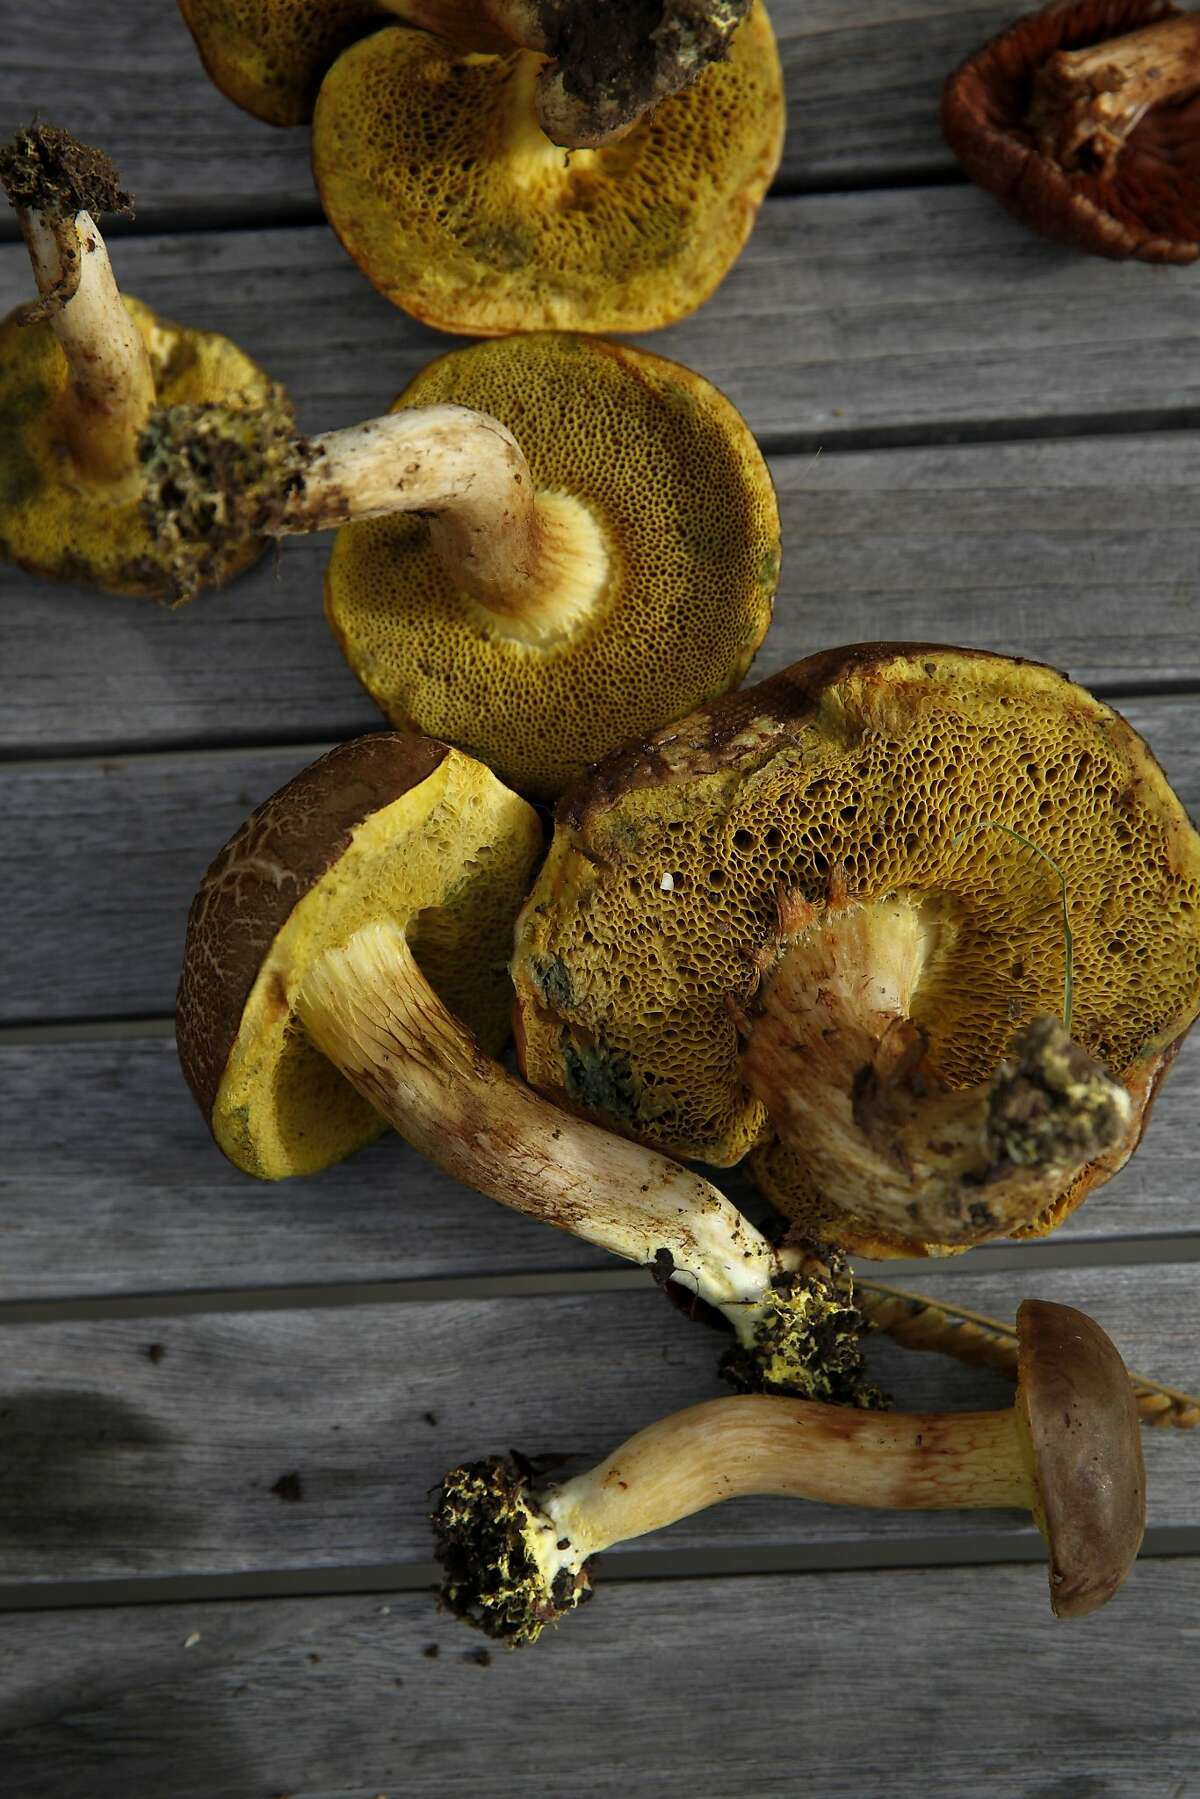 Non-edible mushrooms from the bolete group that were gathered by participants during a wild mushroom foray near Healdsburg, Calif., on Sunday, December 27, 2015.